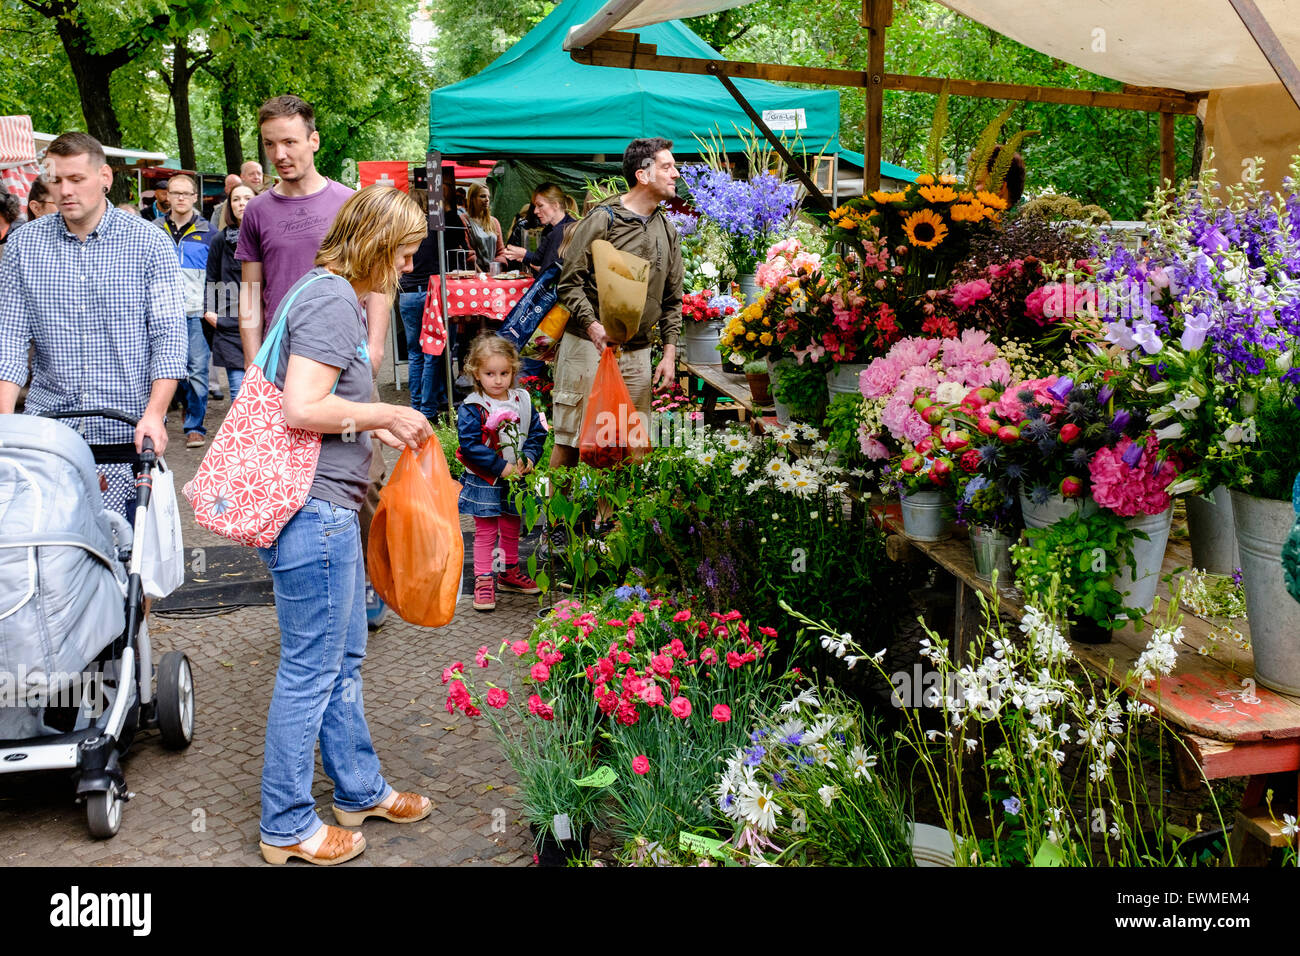 Flower stall at Boxhagener Platz Farmers' Market at  the weekend in Friedrichshain Berlin Germany - Stock Image